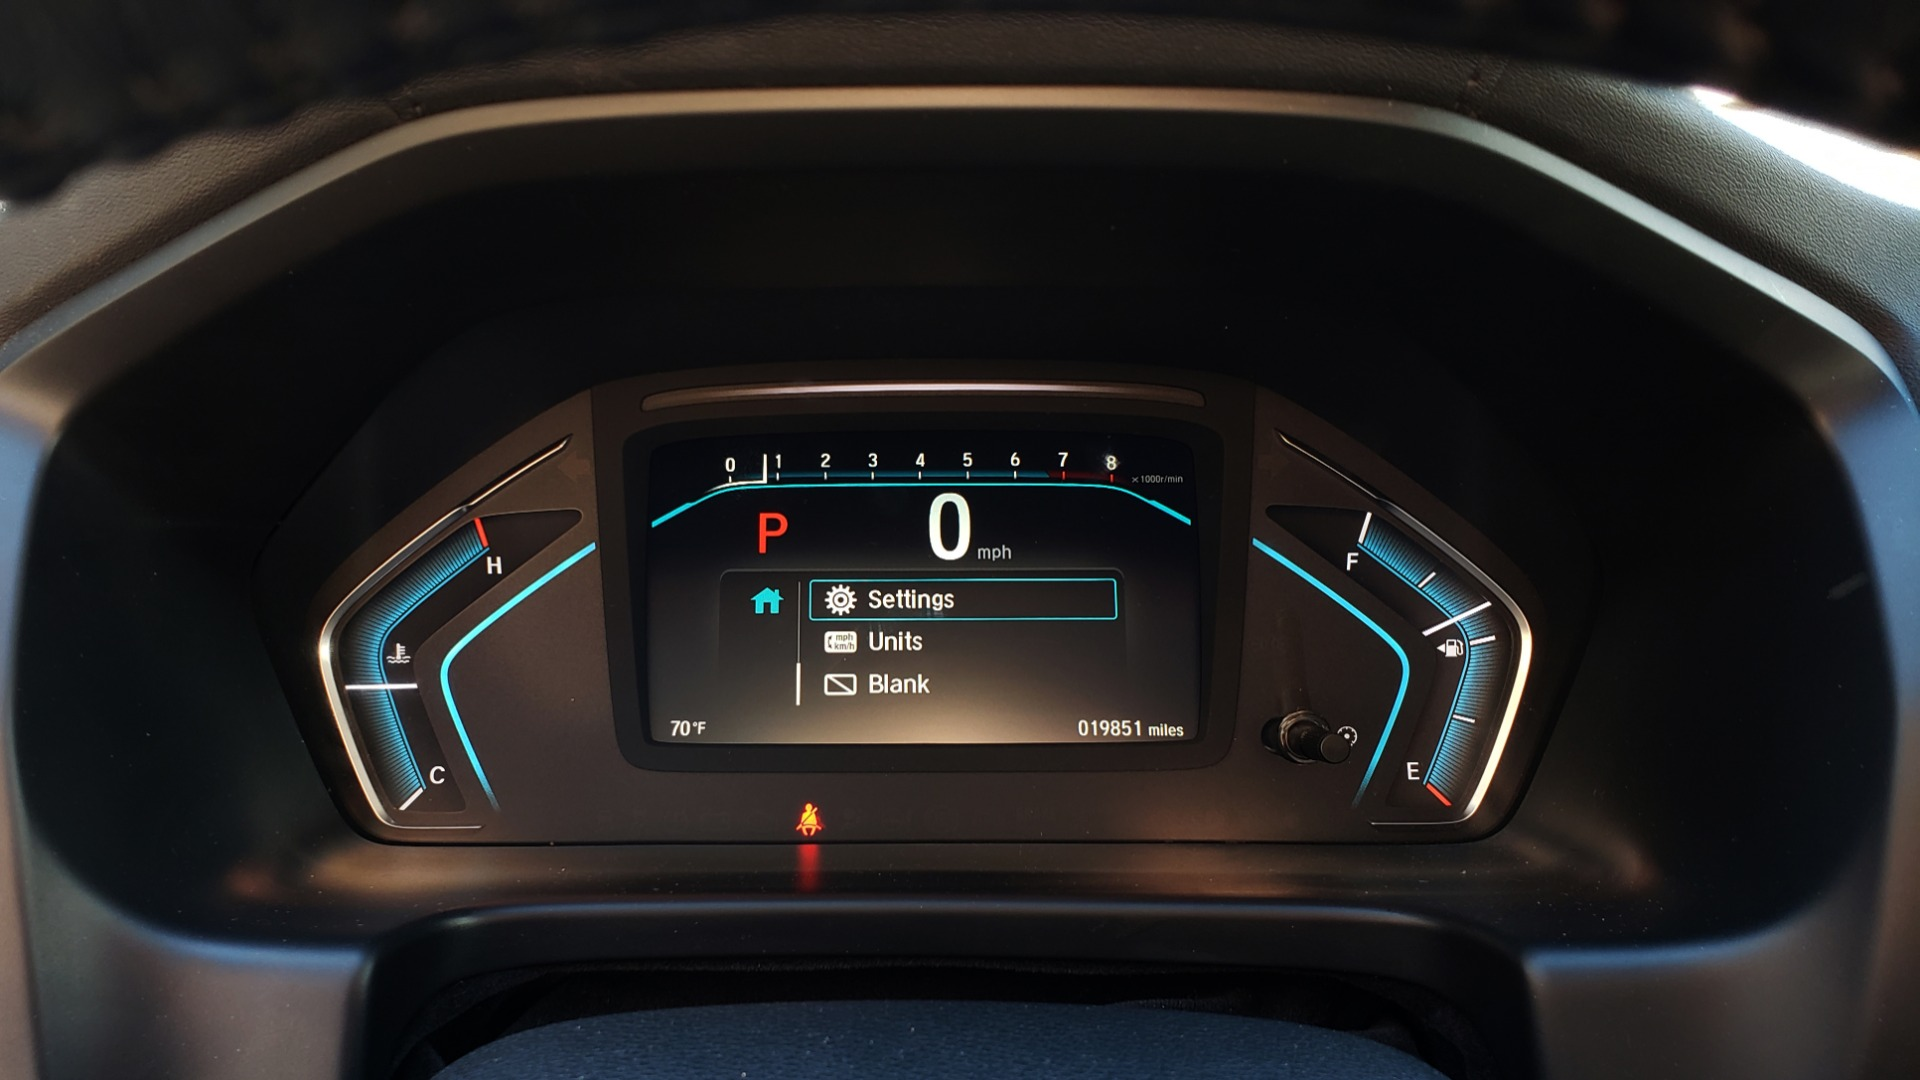 Used 2019 Honda ODYSSEY EX-L BRAUNABILITY / NAV / RES / LKA / BLUE-RAY / SUNROOF / REARVIEW for sale $49,999 at Formula Imports in Charlotte NC 28227 21